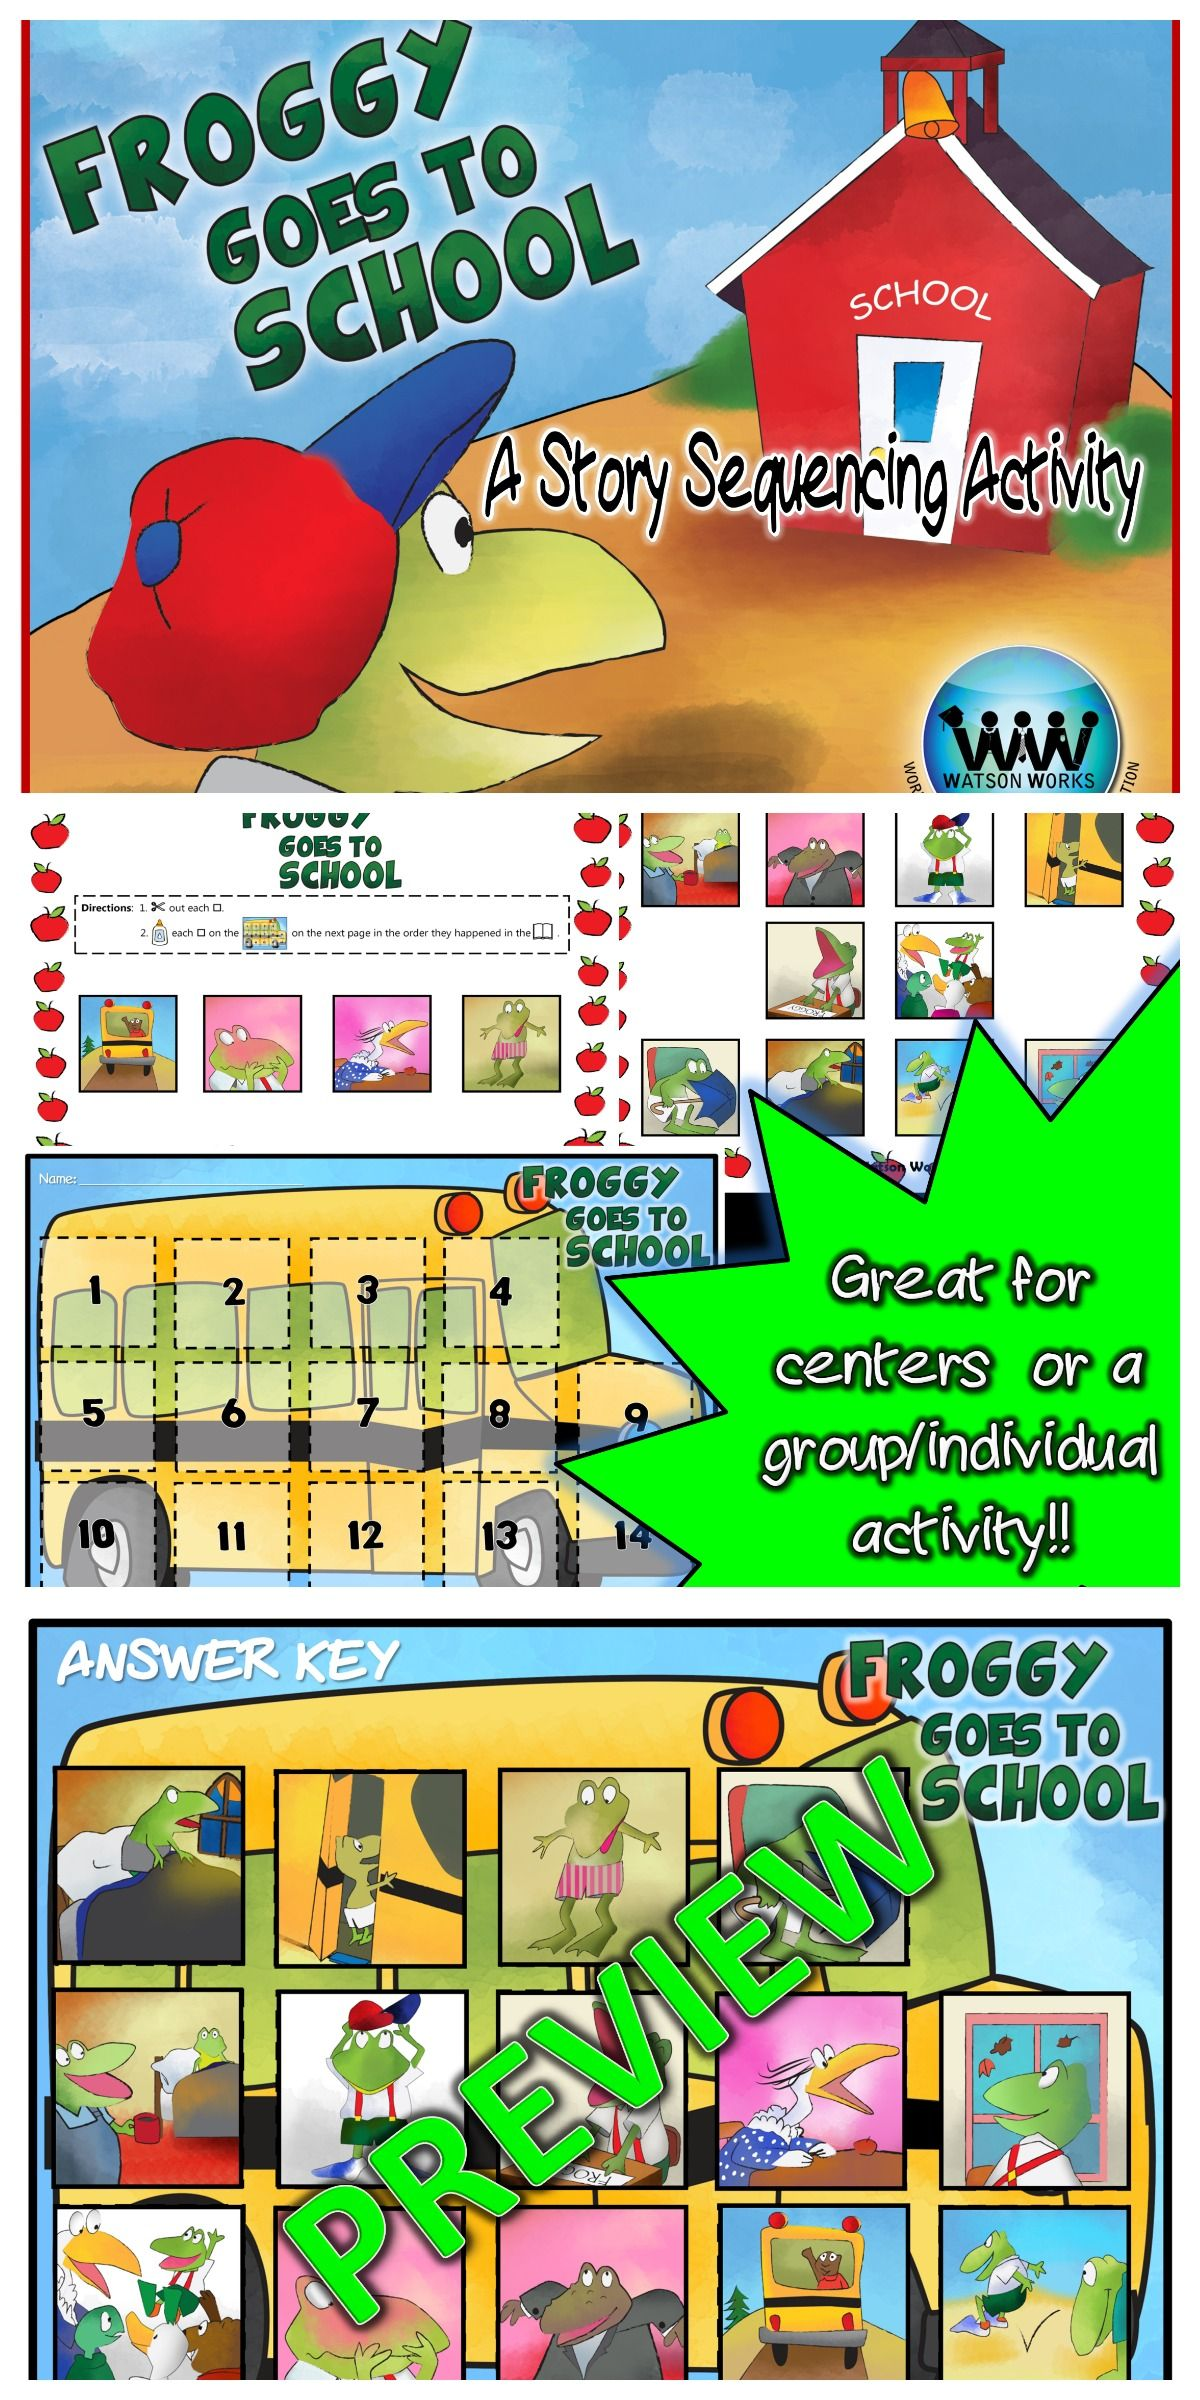 Froggy Goes To School A Story Sequencing Activity